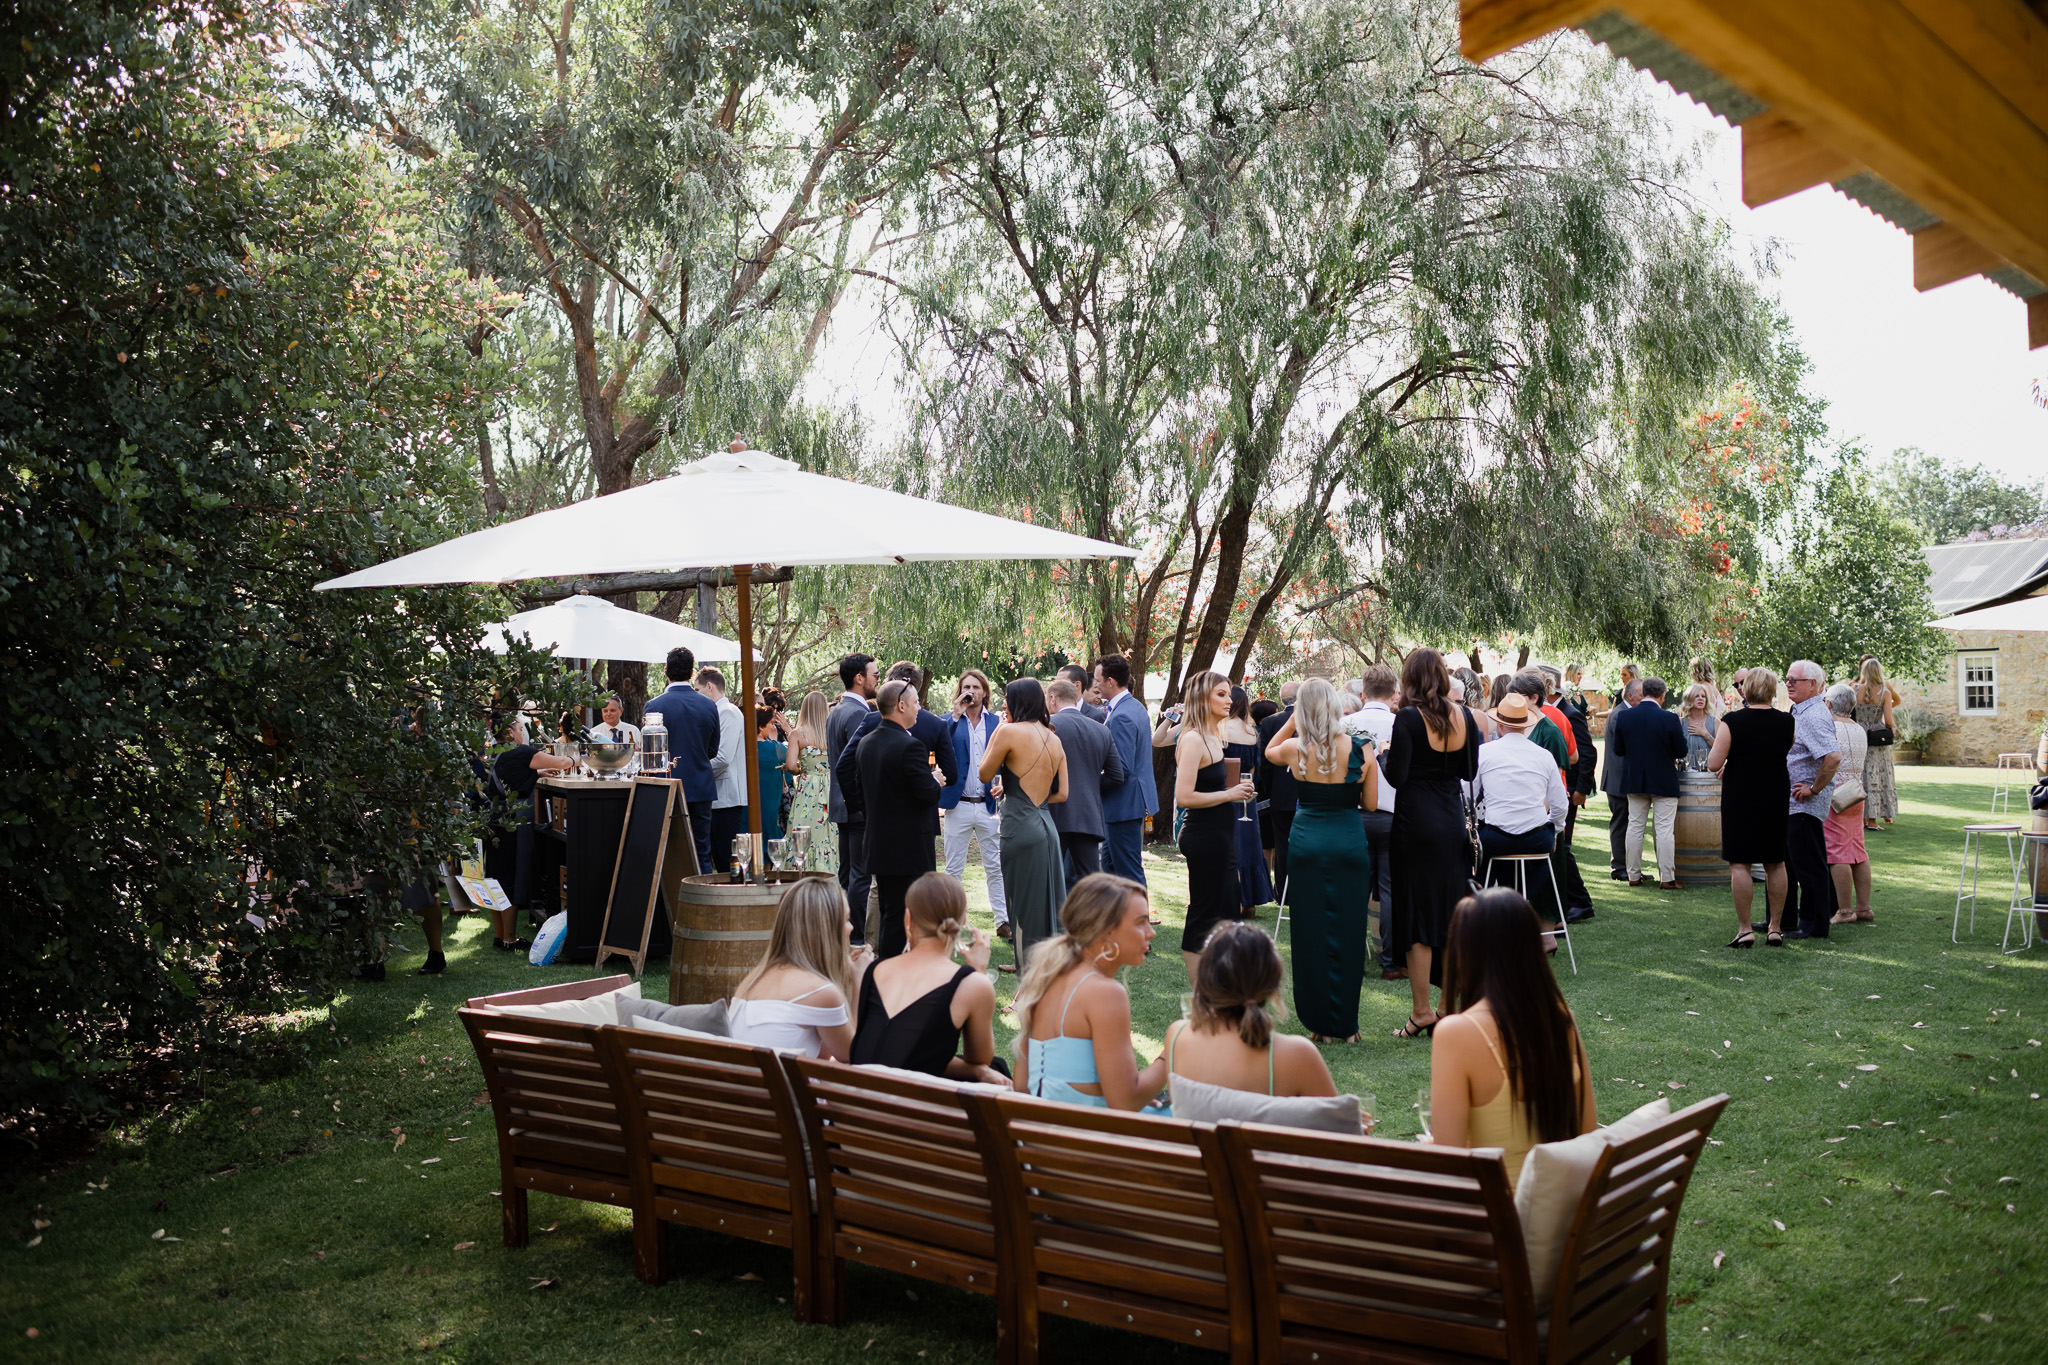 garden wedding party at Old Broadwater Farm with bar, furniture and peppermint trees